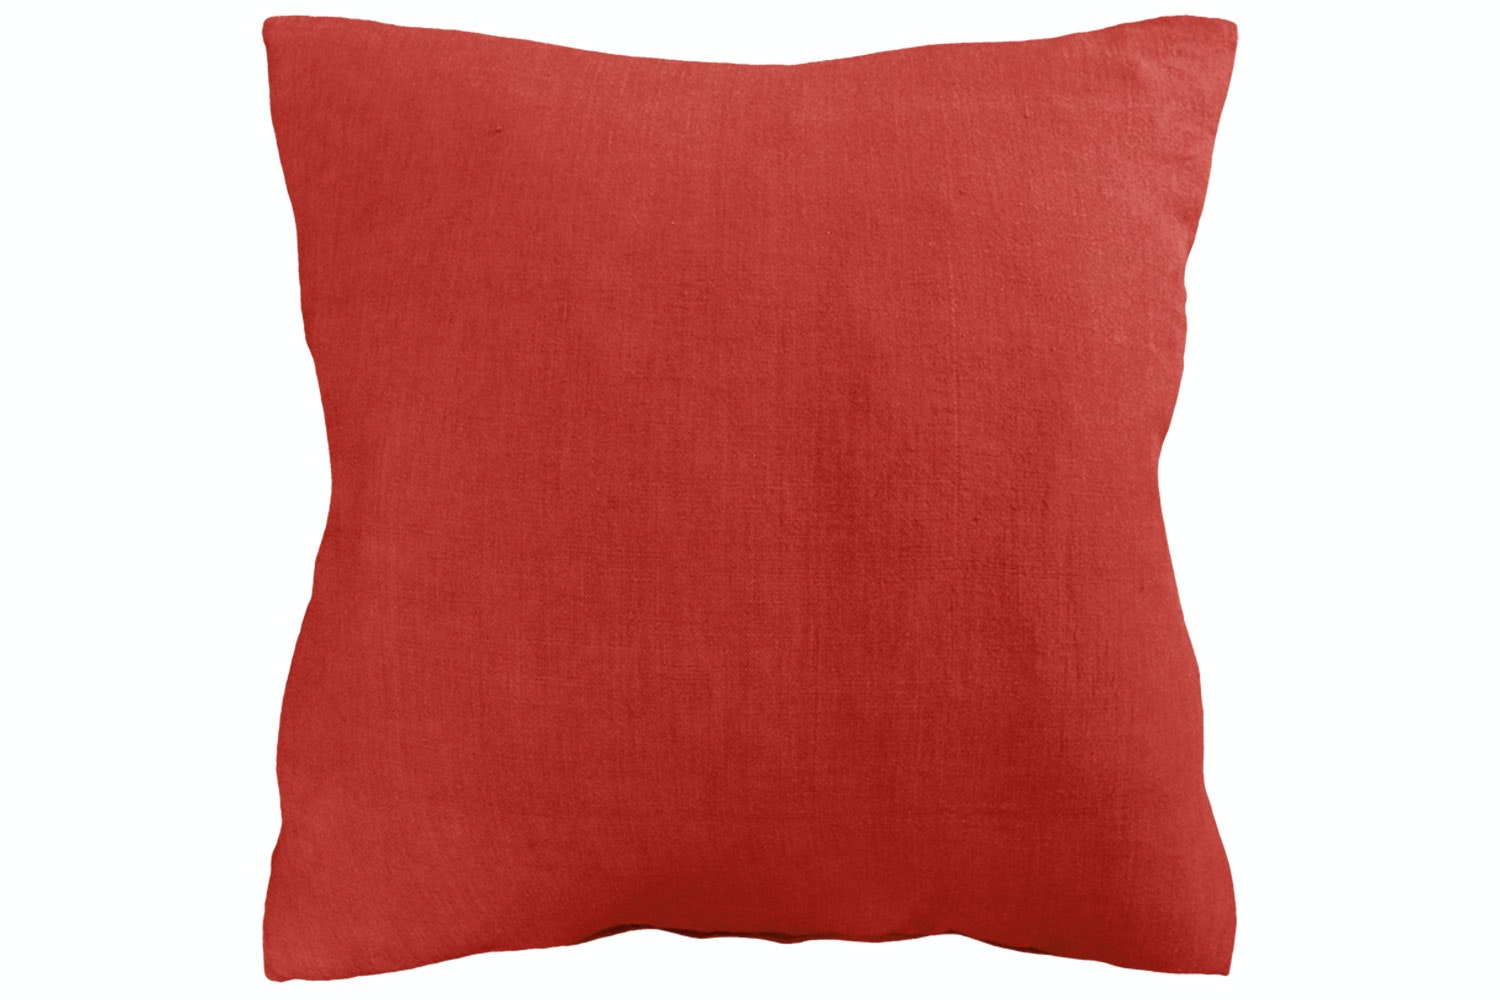 Indira Cushions by Mulberi